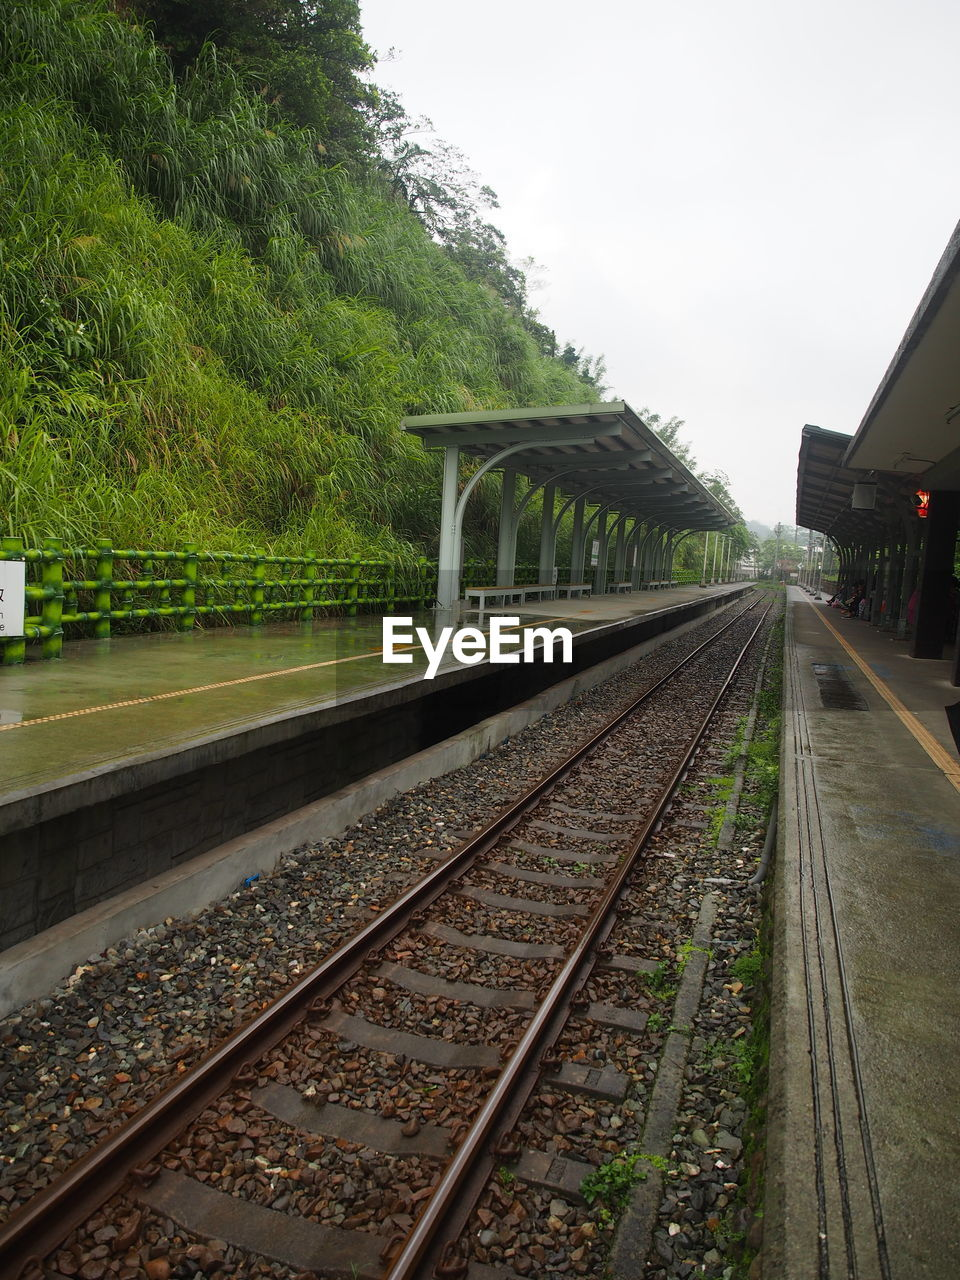 rail transportation, track, railroad track, transportation, tree, nature, plant, sky, mode of transportation, public transportation, no people, railroad station platform, railroad station, the way forward, day, architecture, direction, diminishing perspective, vanishing point, built structure, long